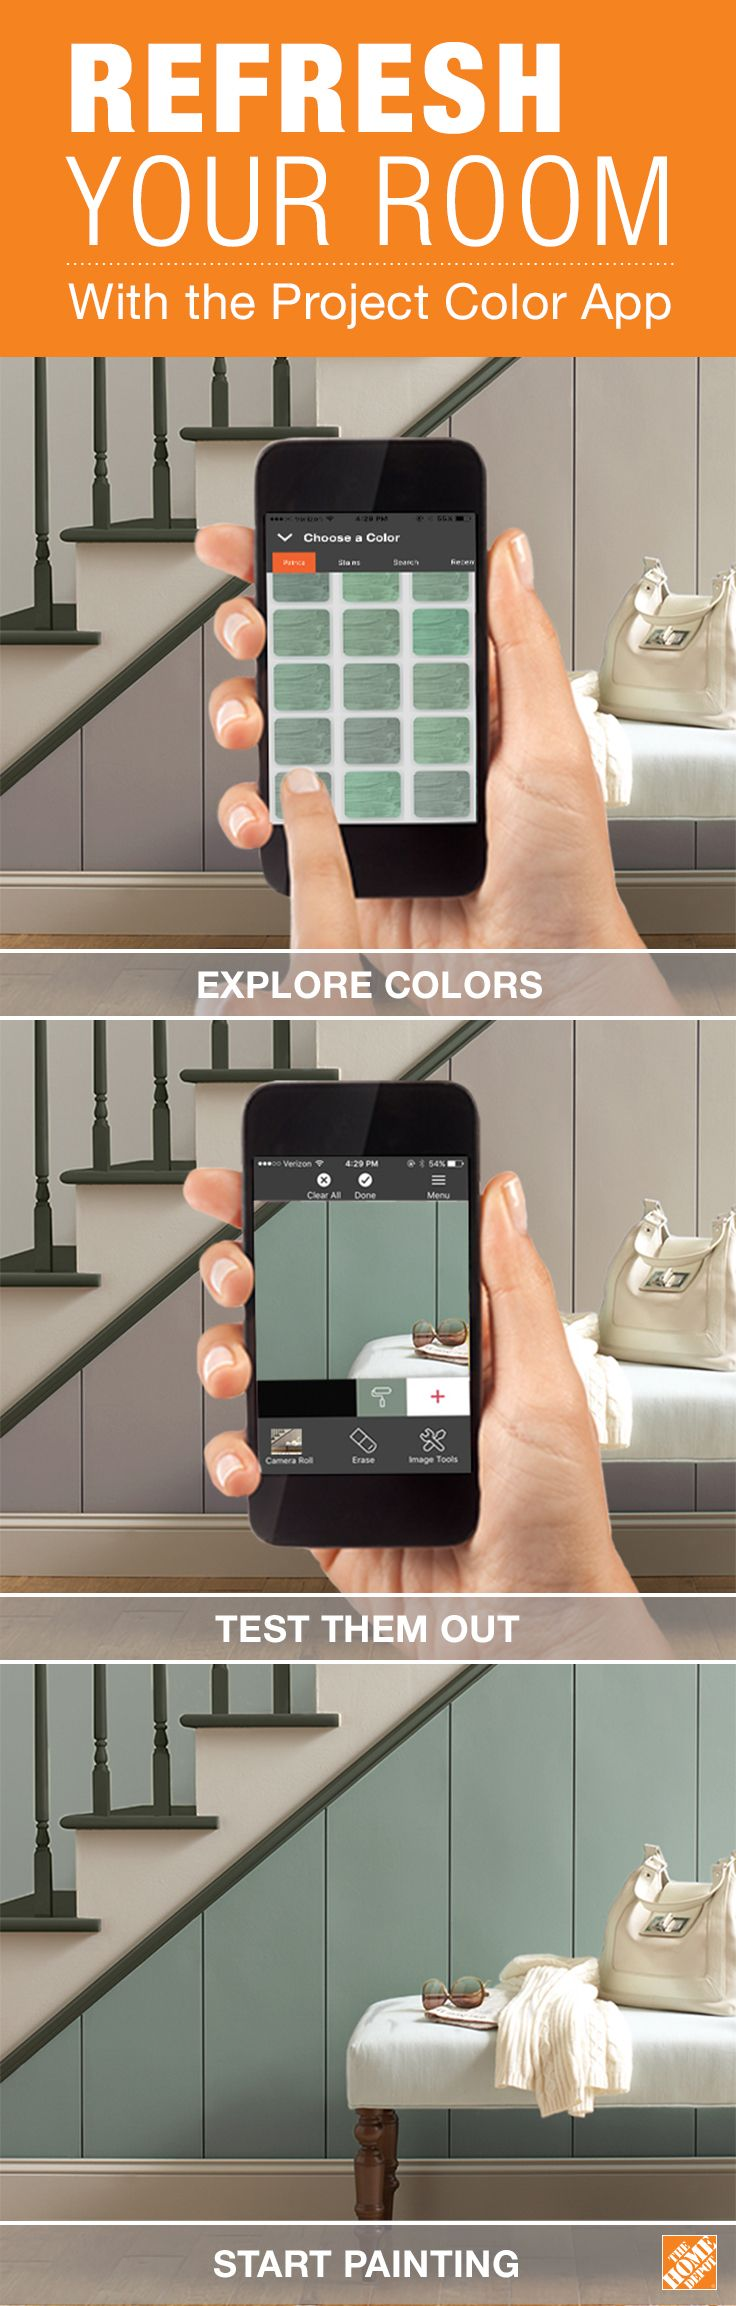 "Search ""Project Color by The Home Depot"" on your iPhone or Android to download the app today! The Project Color app by The Home Depot allows you to try out paint colors virtually. When you're thinking about redecorating a room or refreshing your walls, consult the app to test out your new color choices, like BEHR Underground Gardens pictured here. Download the app, and start trying out new paint colors now."